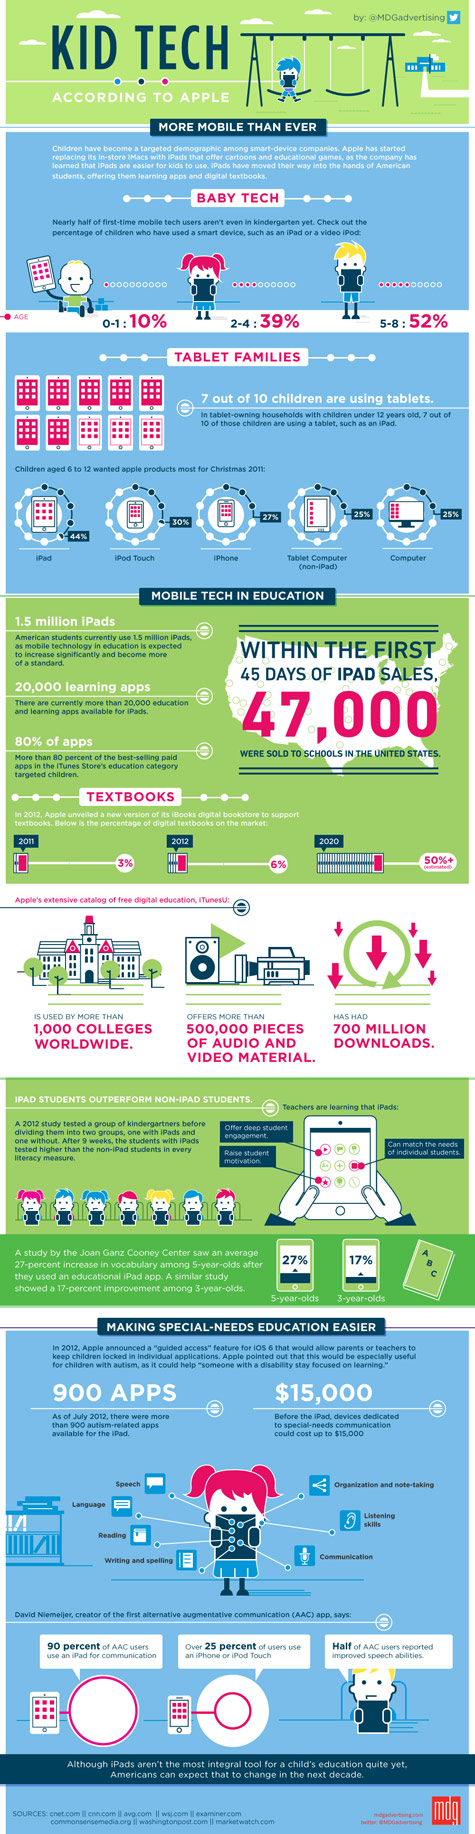 kid tech infographic 475